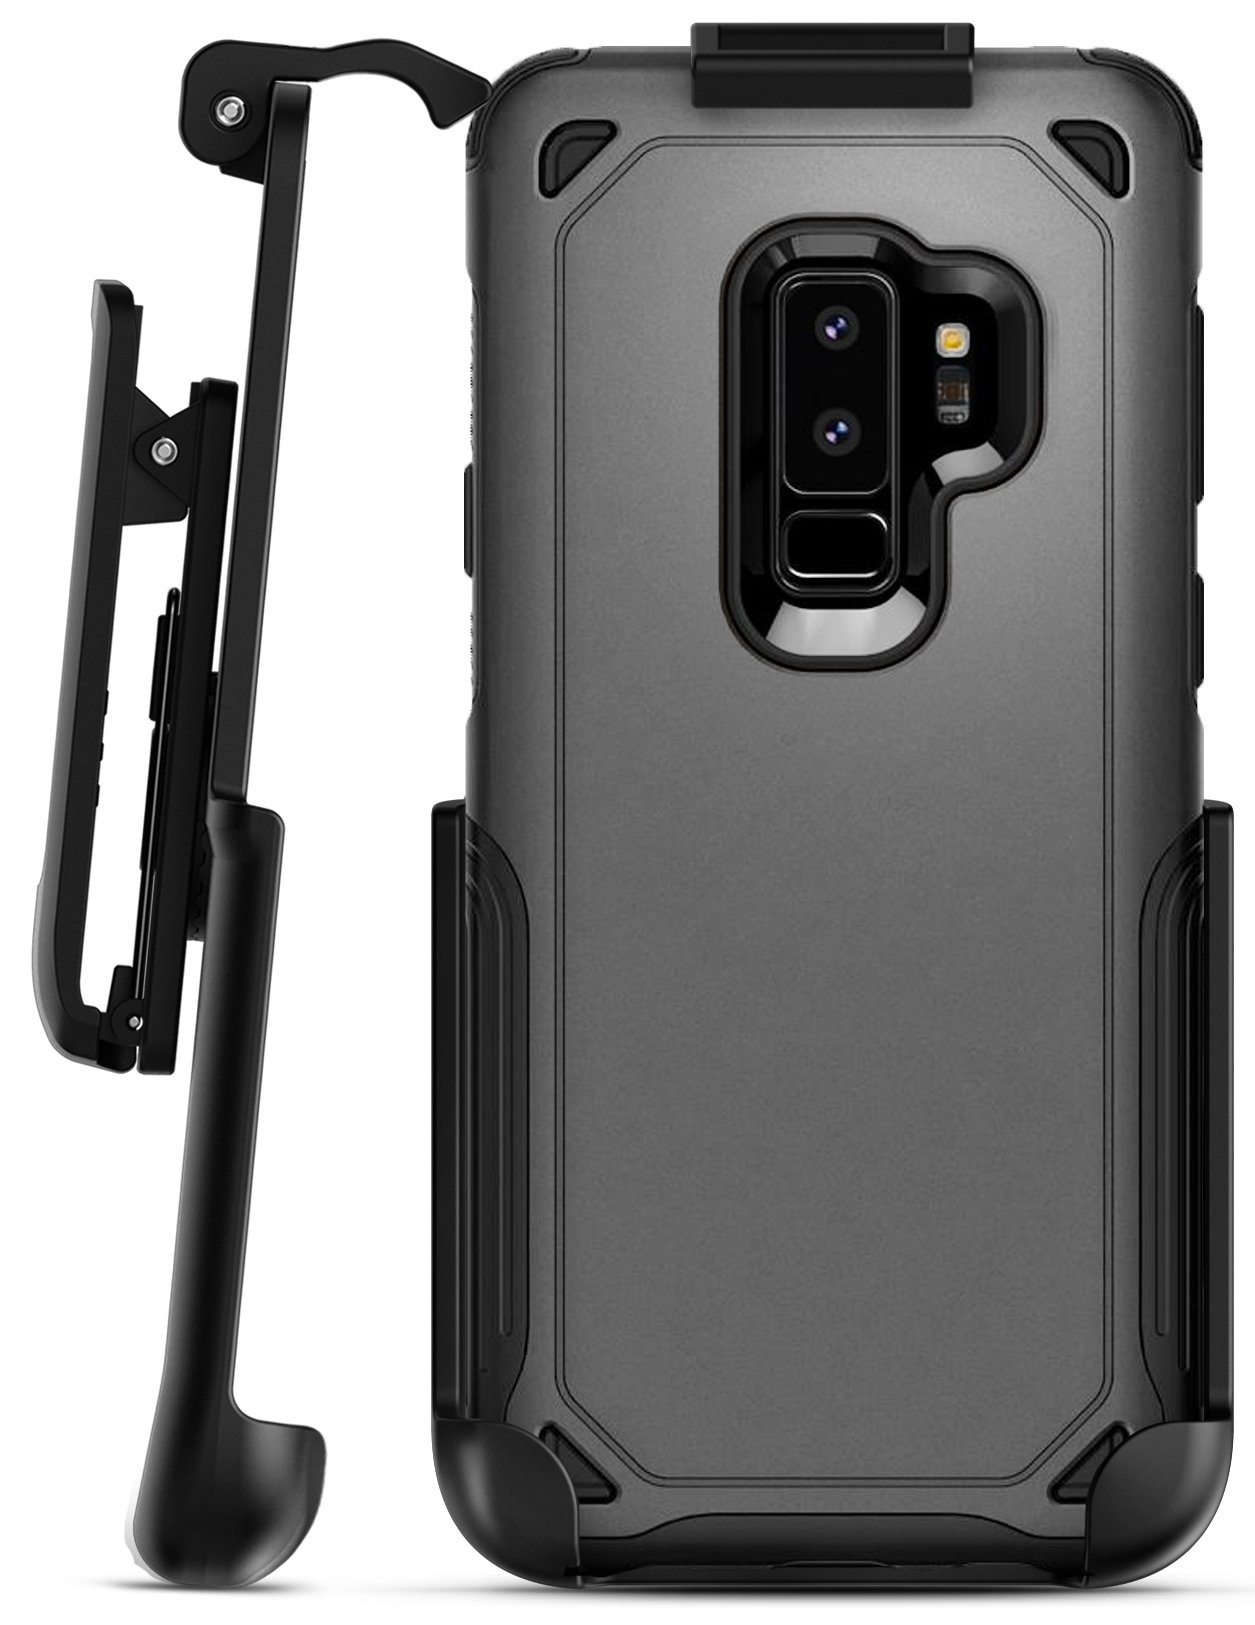 reputable site 40870 07549 Galaxy S9 Plus Spigen Hybrid Armor Holster